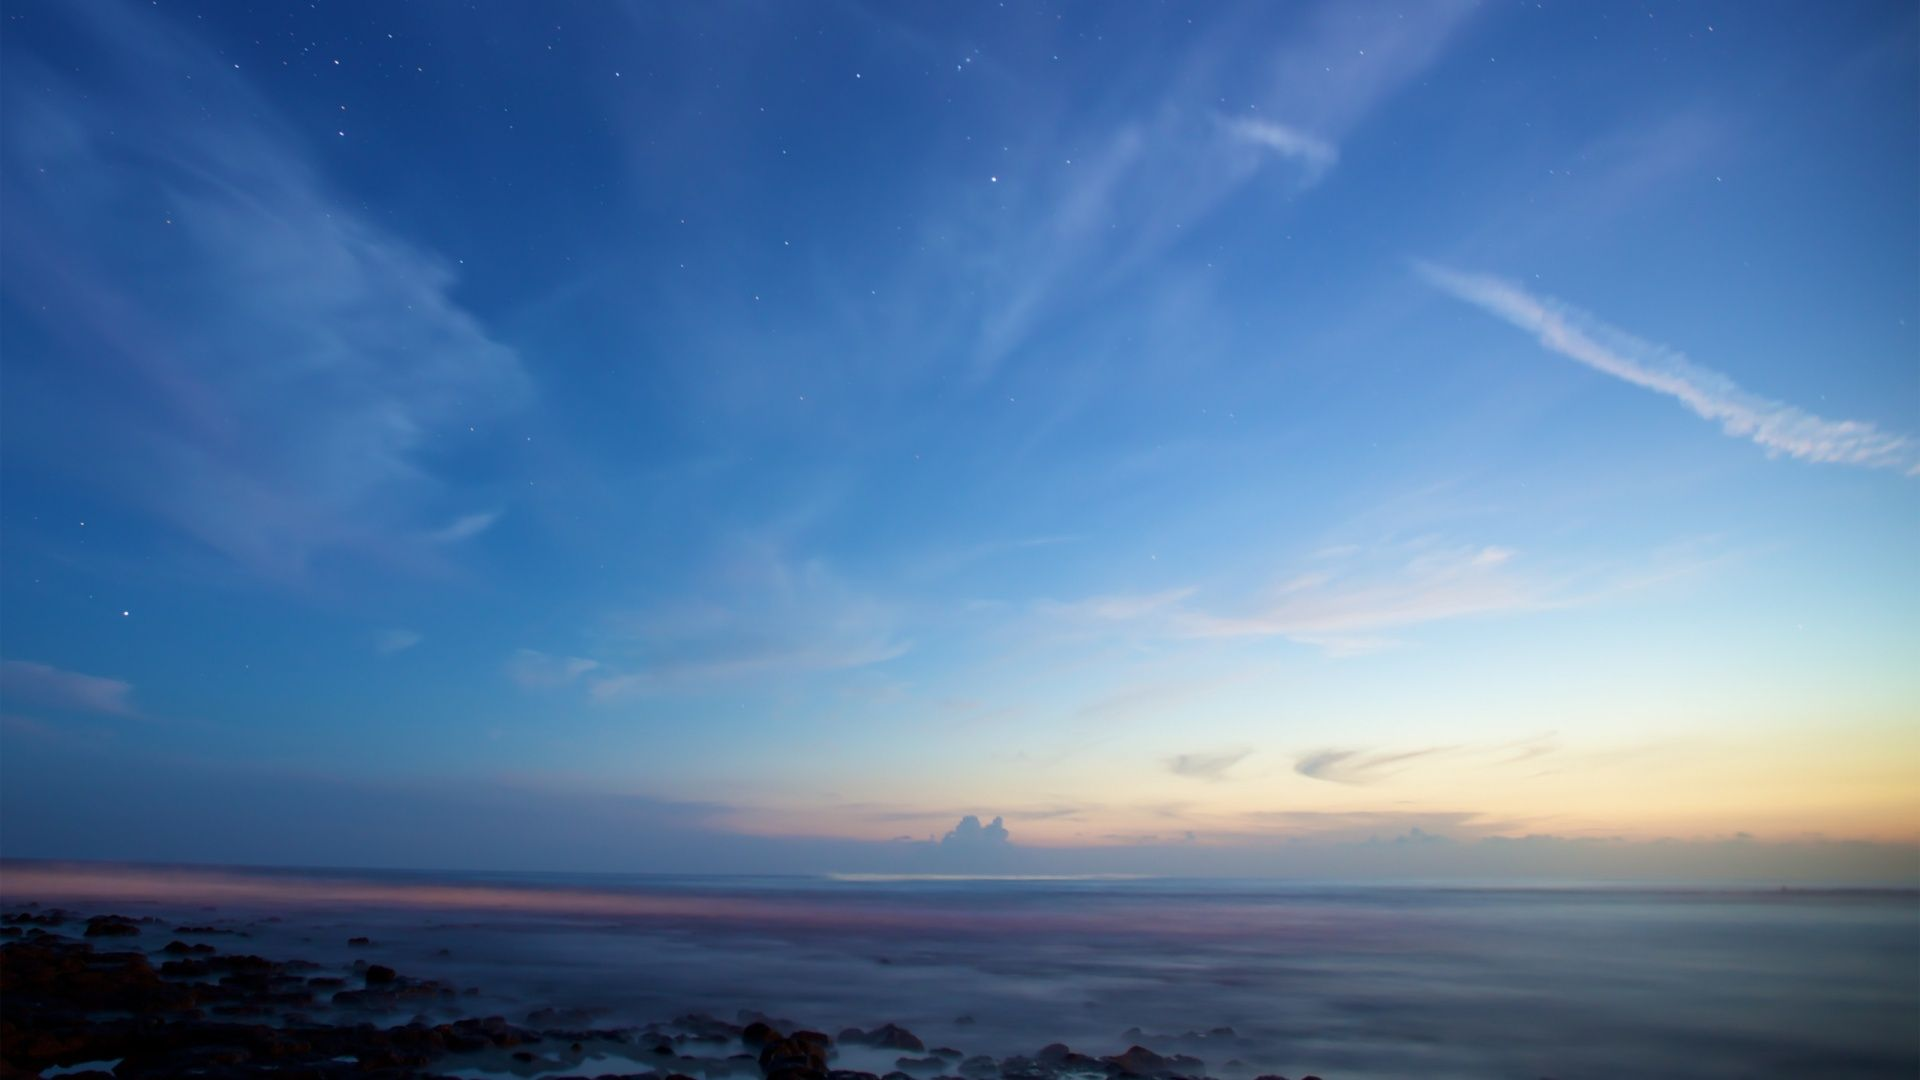 Sky Wallpapers: Top Free Evening Sky Backgrounds